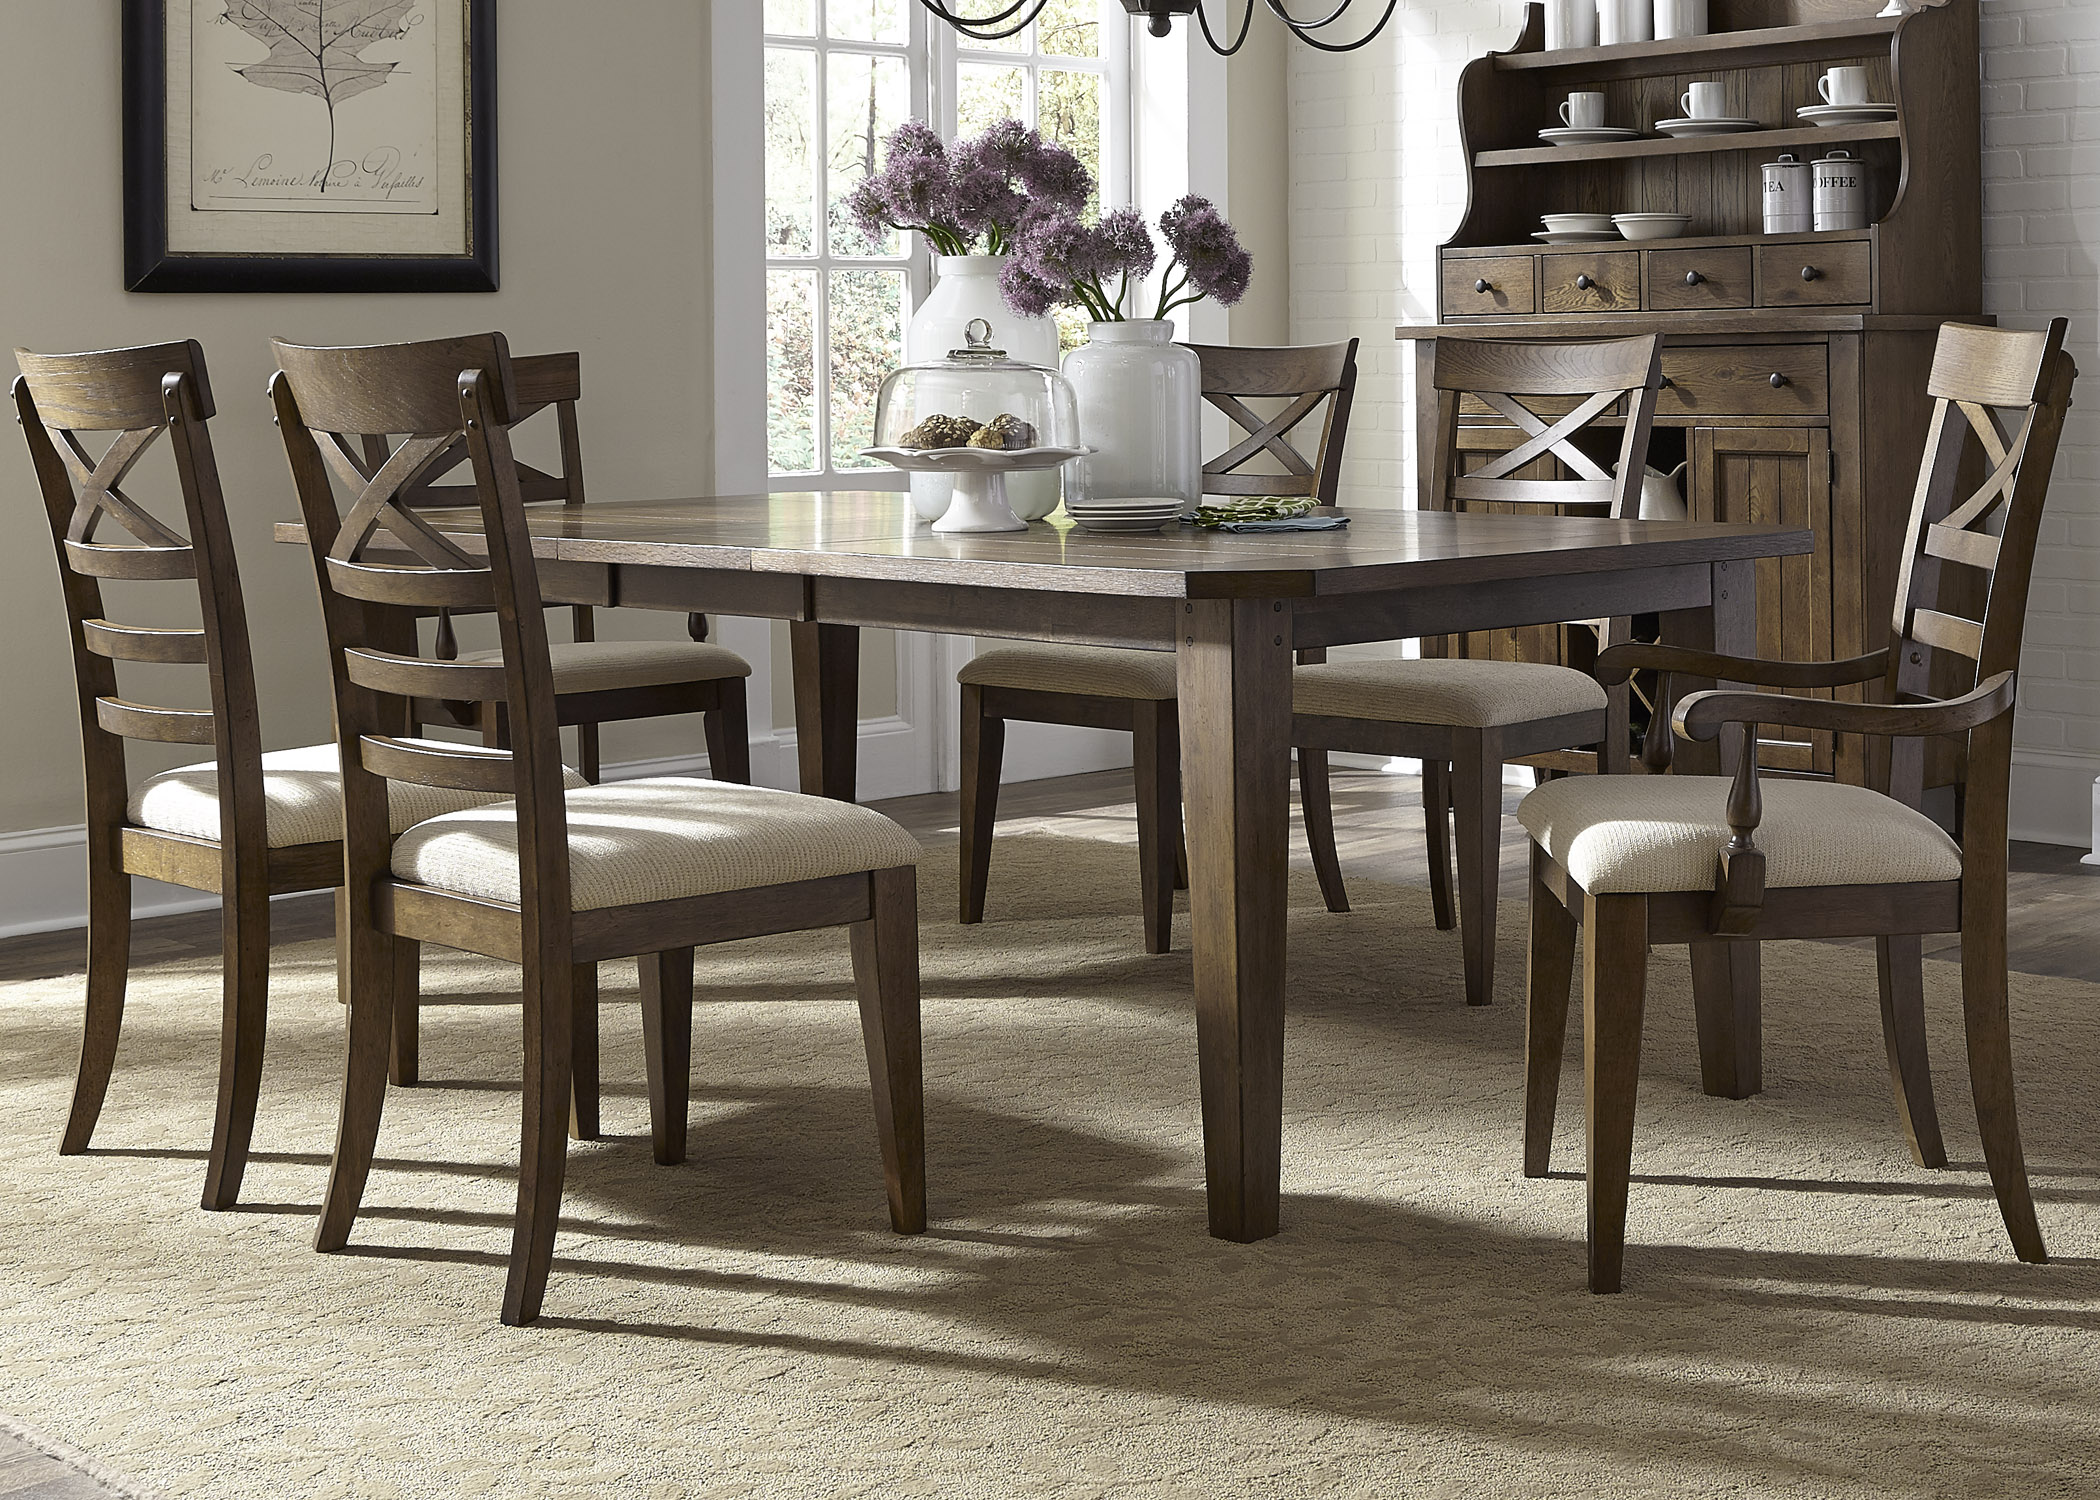 Liberty Furniture Hearthstone Opt 7 Piece Rectangular Table Set  - Item Number: 382-DR-O7RLS